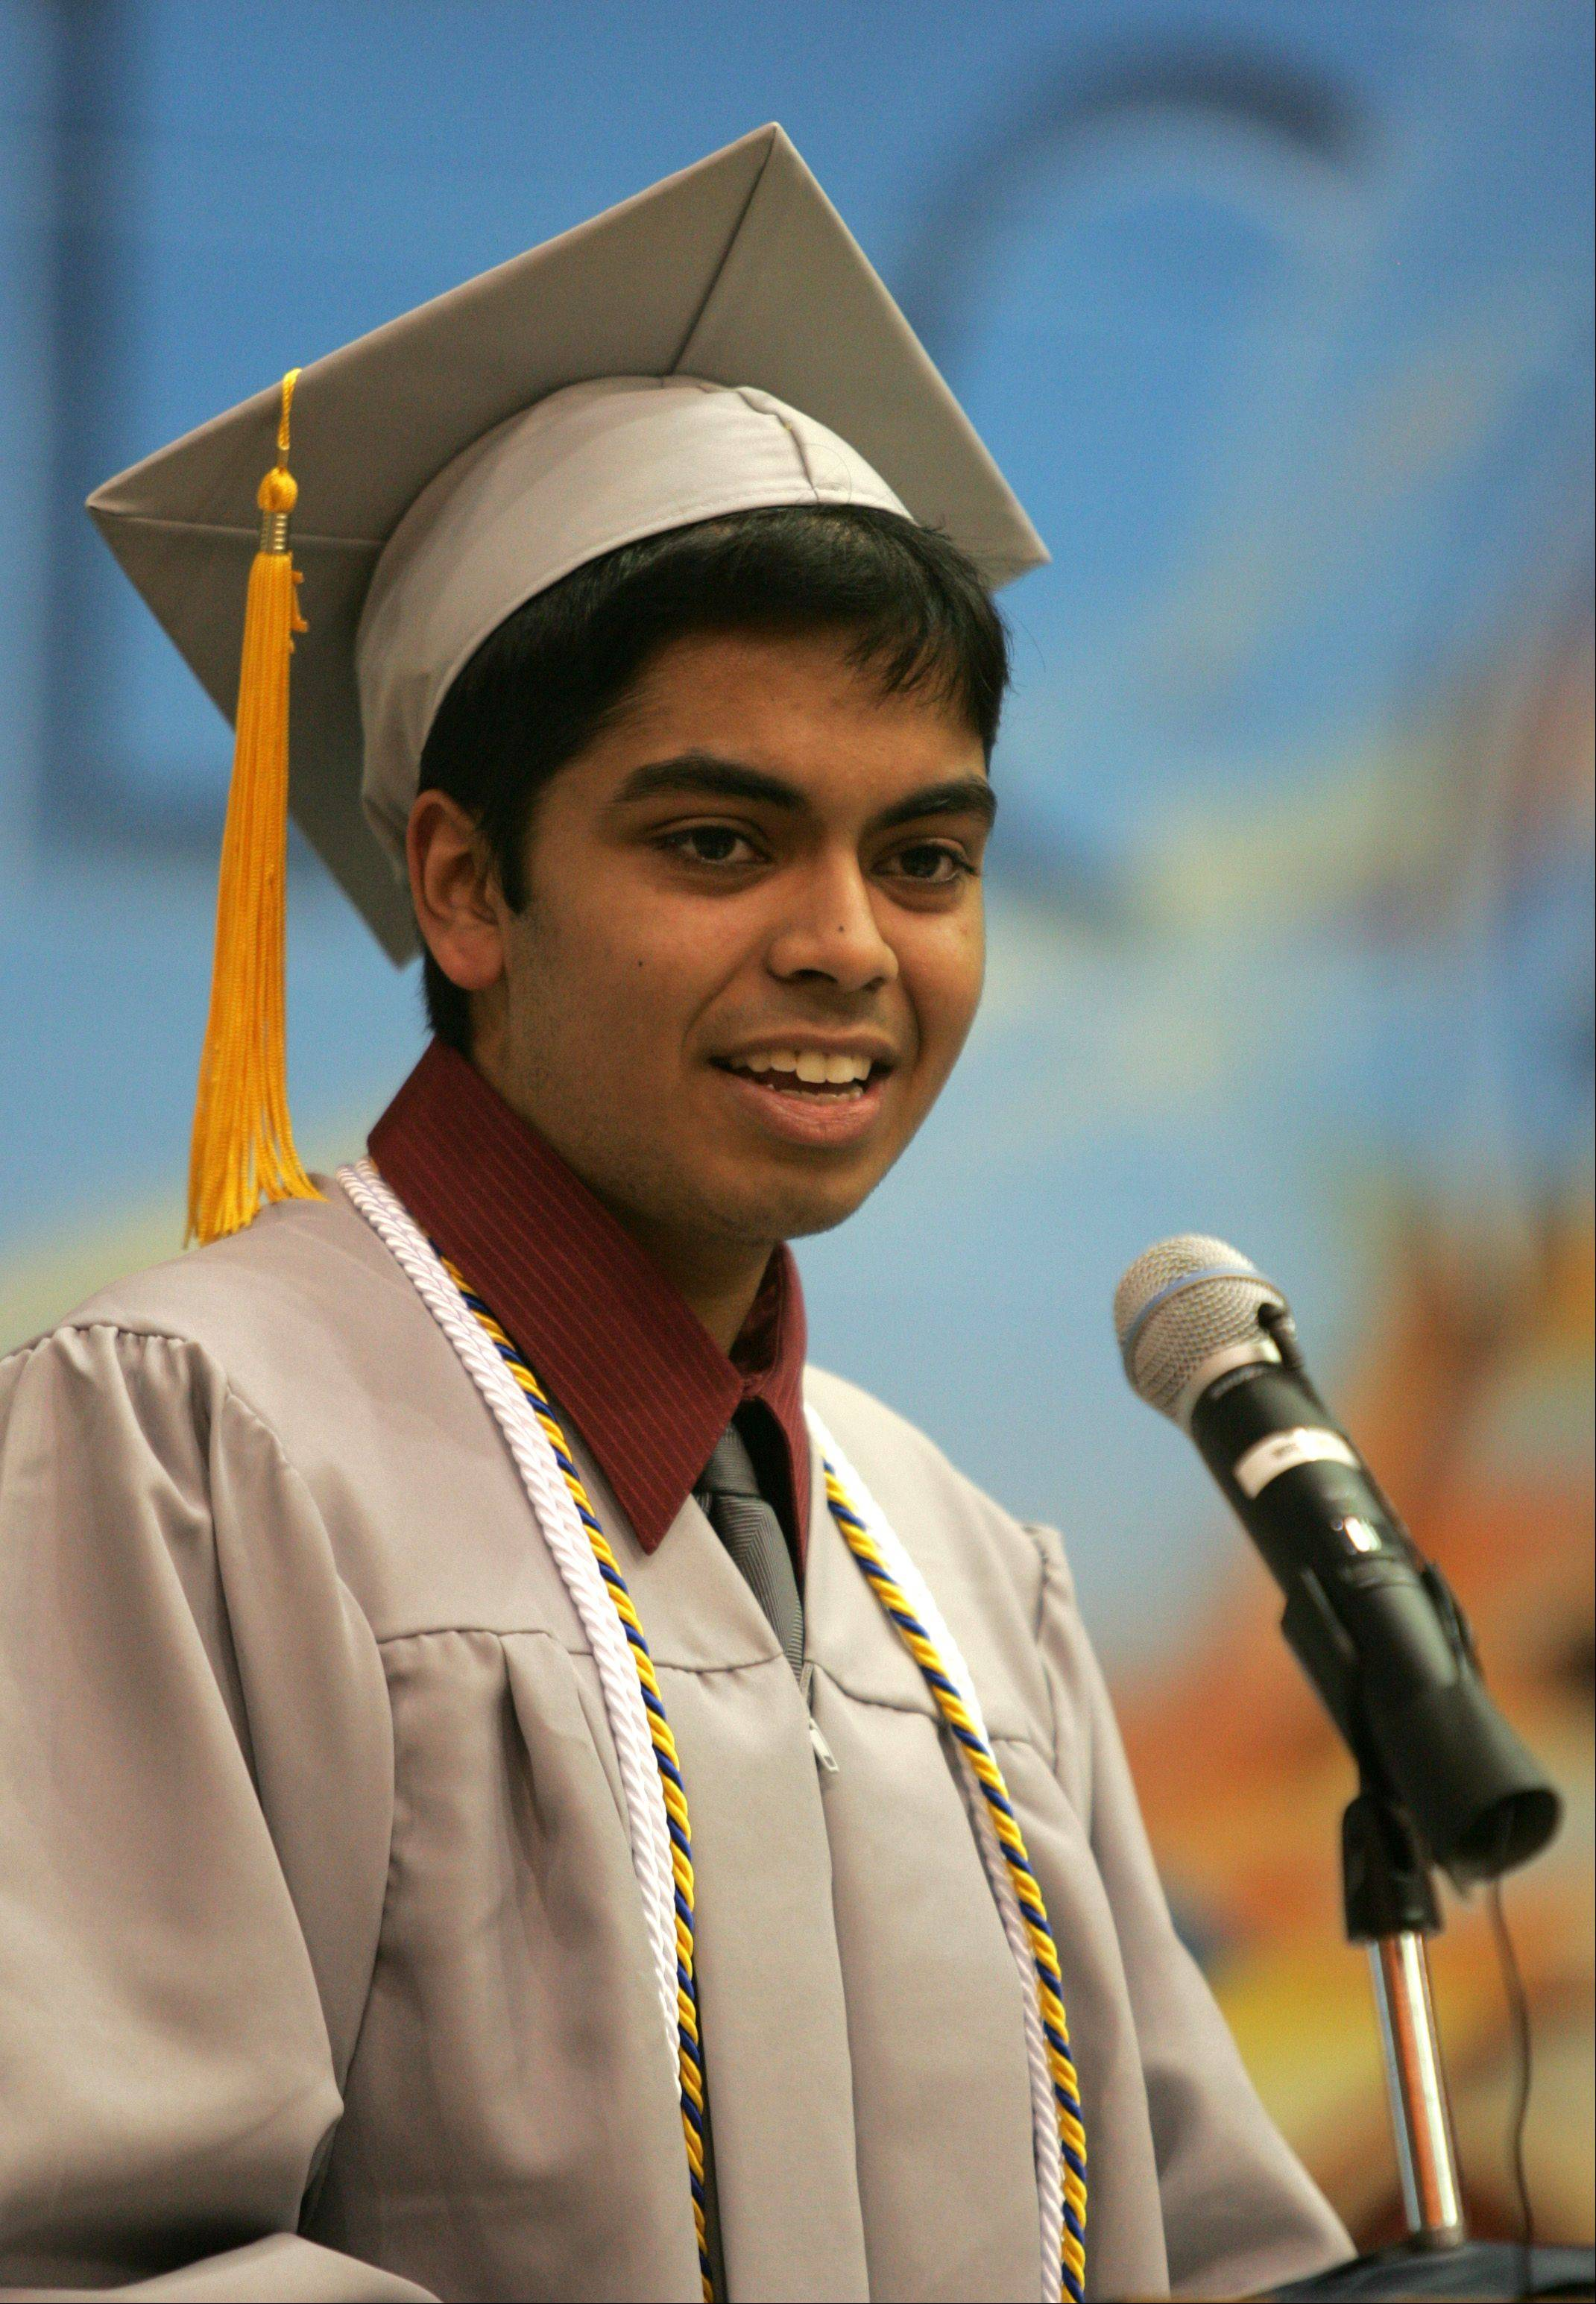 "Shawn Caeiro delivers a commencement address titled 'Together as One"", during the Willowbrook High School graduation."